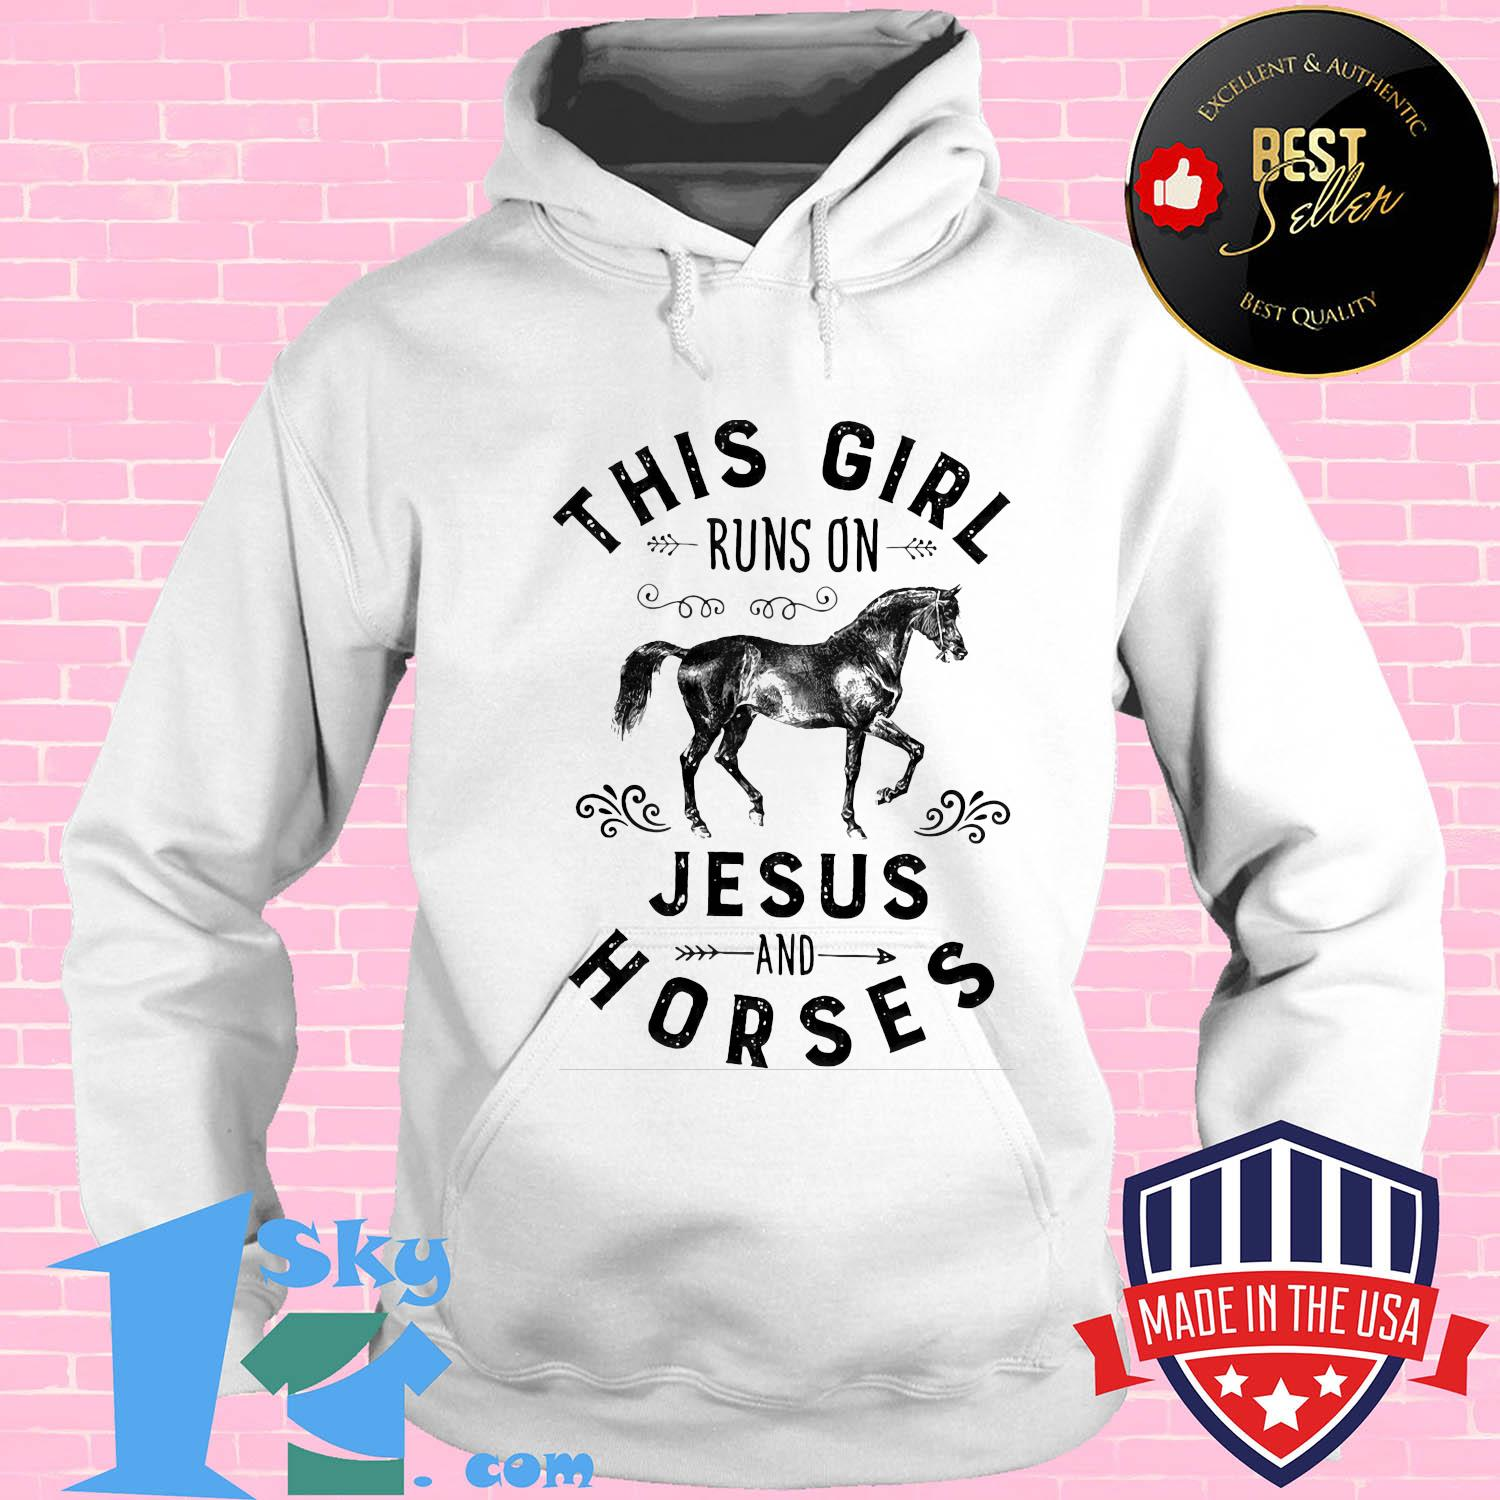 14cc6b15 official this girl runs on jesus and horses shirt hoodie - Shop trending - We offer all trend shirts - 1SkyTee